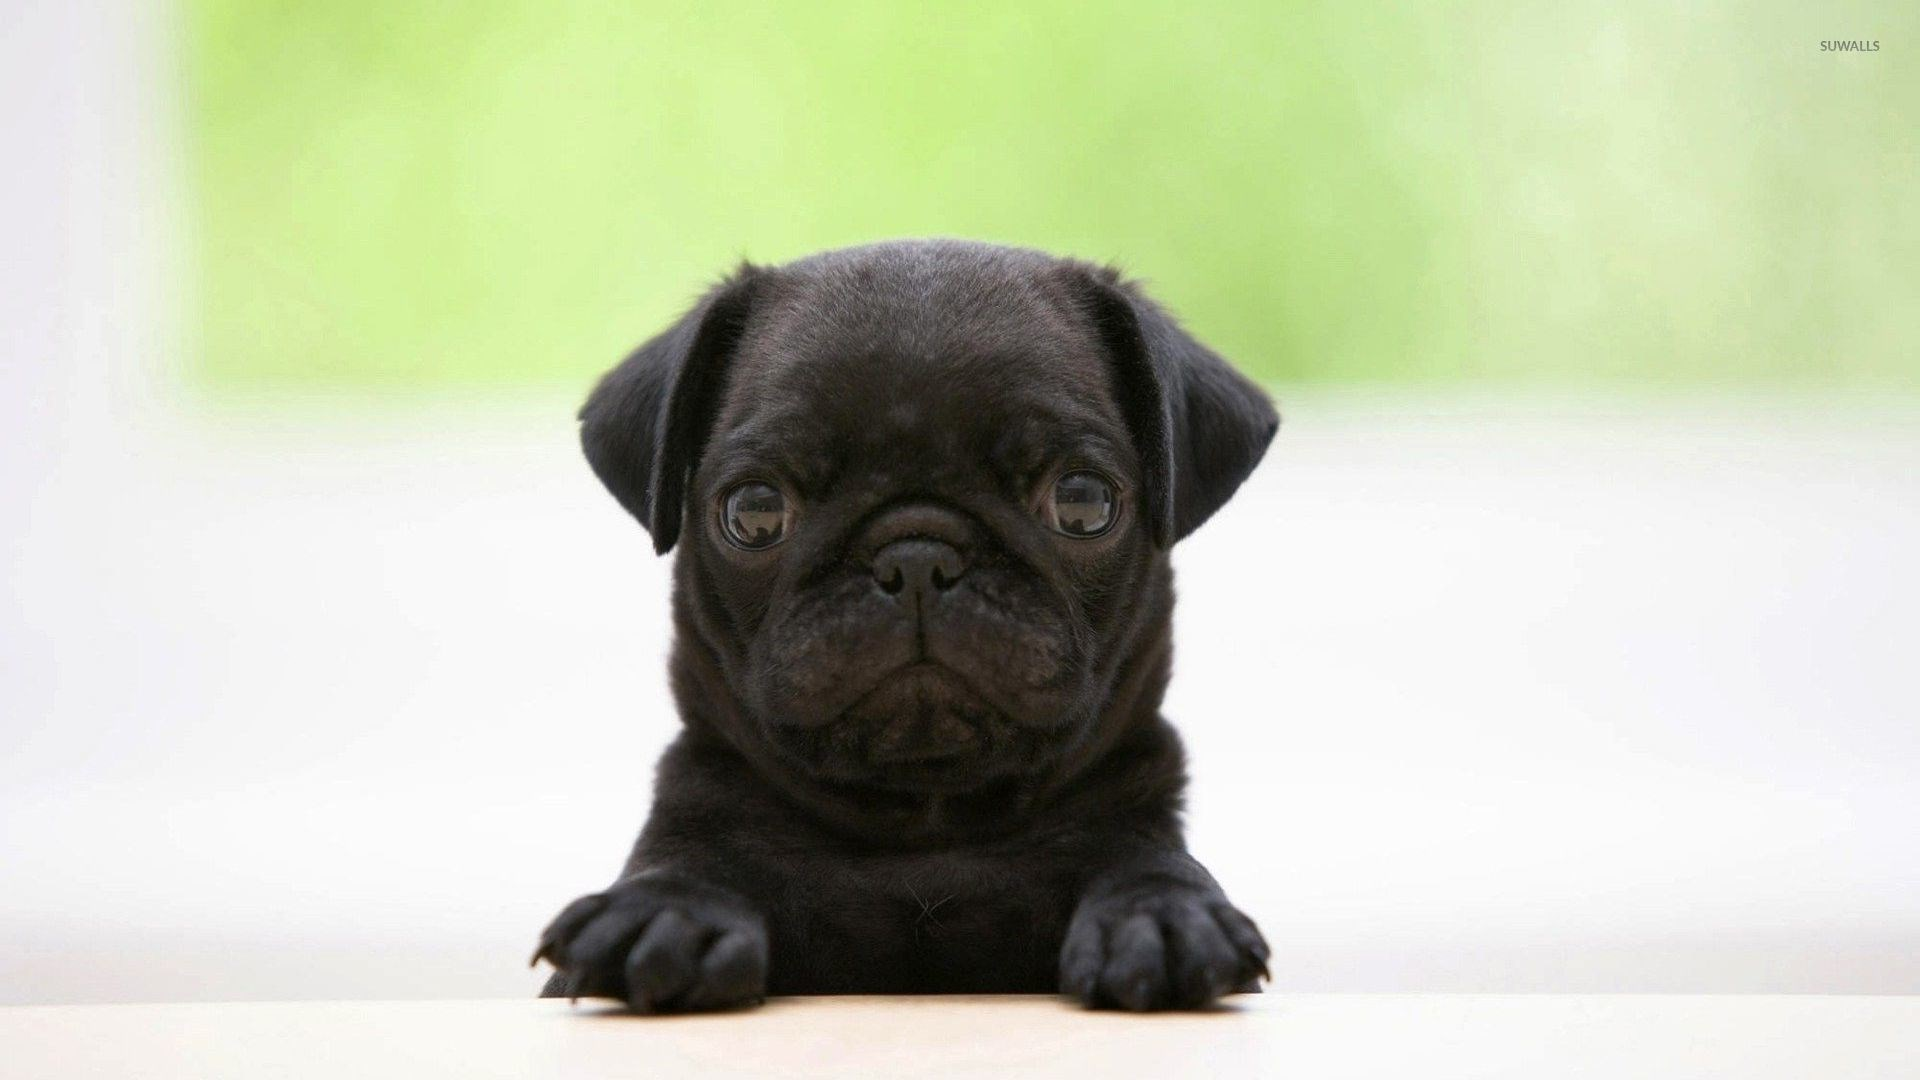 1920-x-1080-px-Free-download-pug-puppy-pic-by-Cydney-Hardman-for-TrunkWeed-com-wallpaper-wpc580587